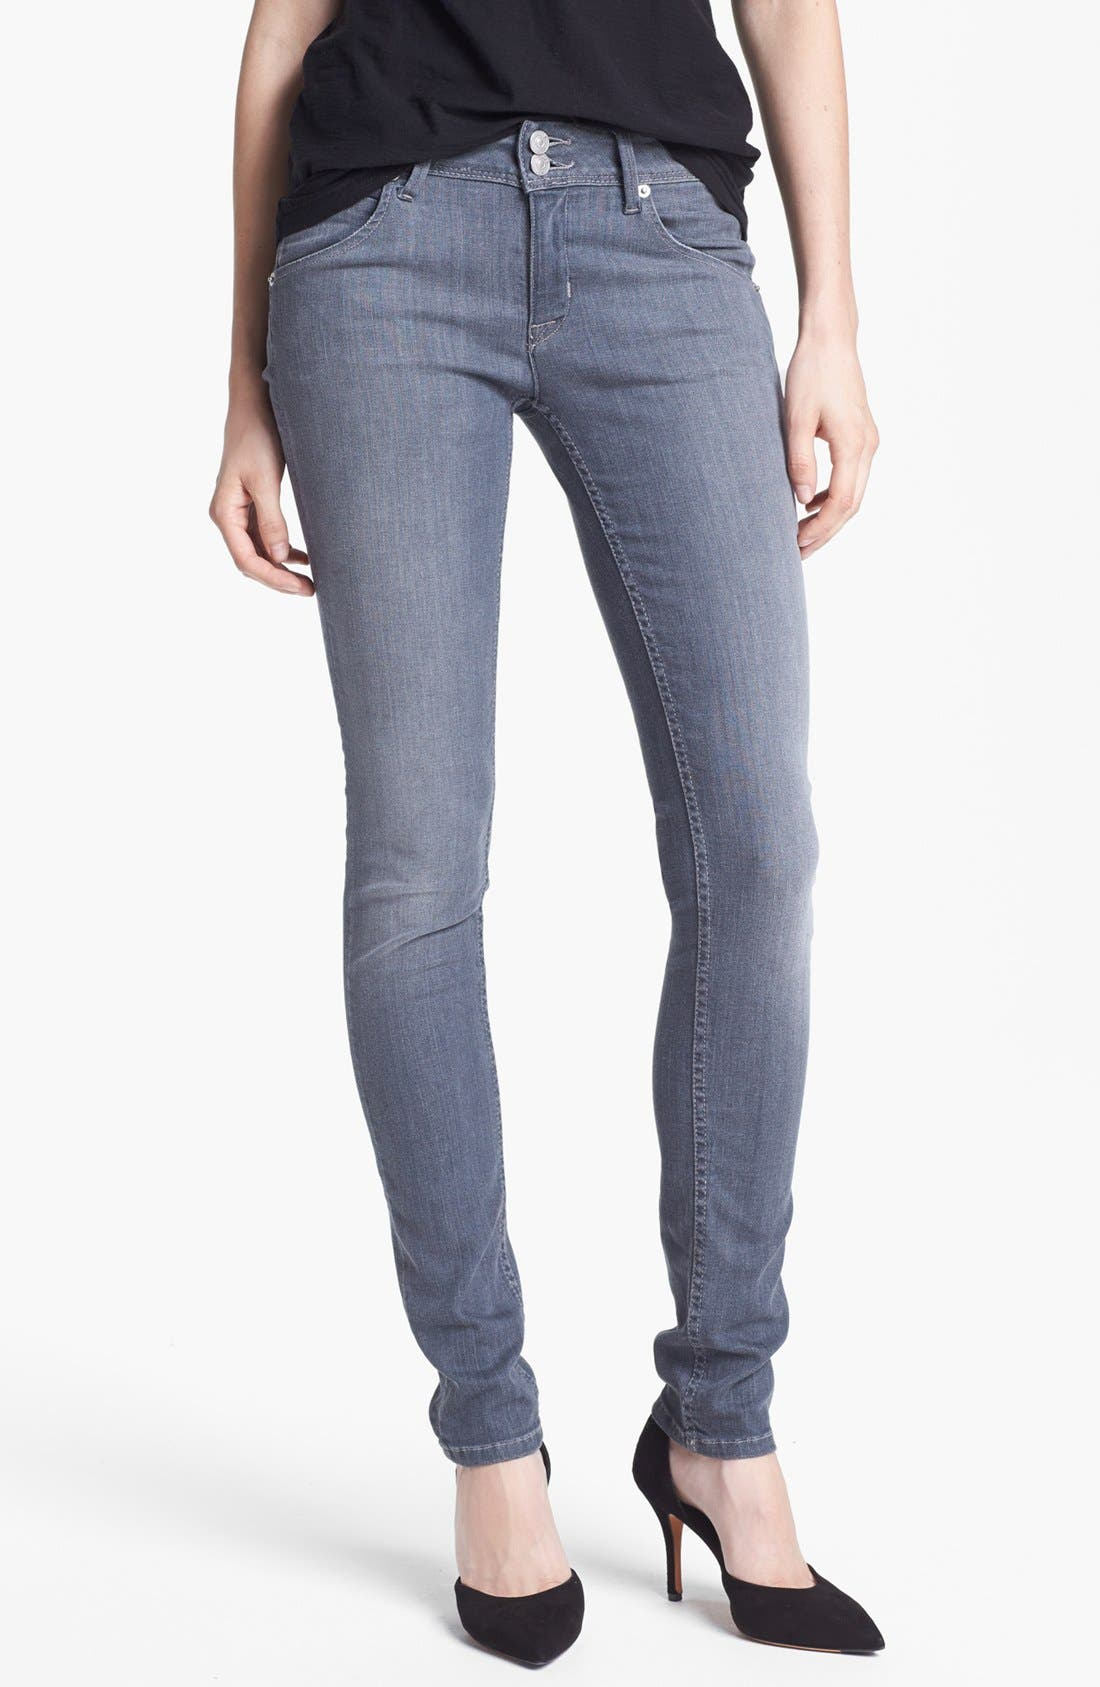 Main Image - Hudson Jeans 'Collin' Skinny Jeans (New Romantics)